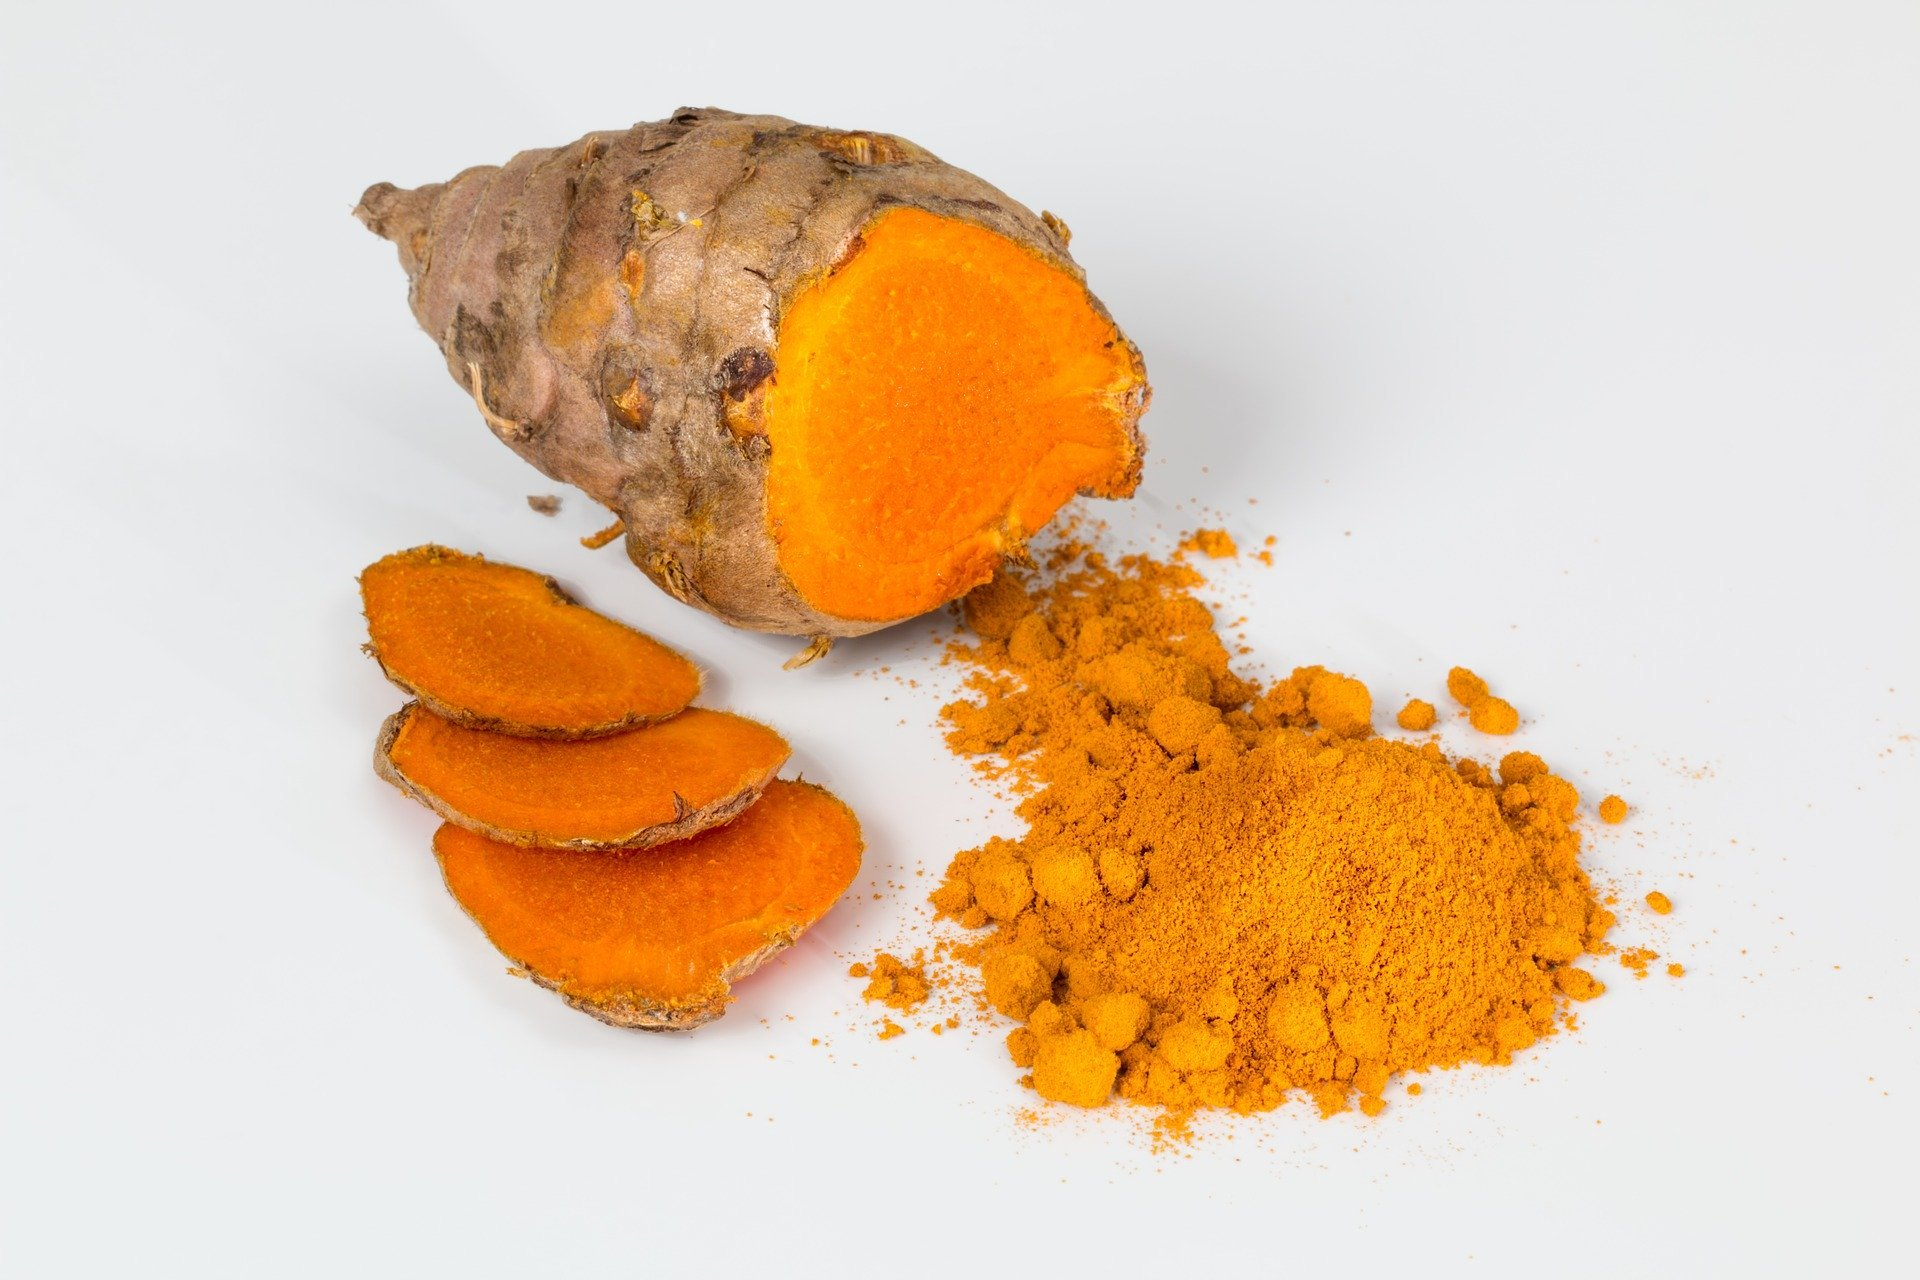 increase glutathione naturally by using turmeric. turmeric. www.blisslife.in